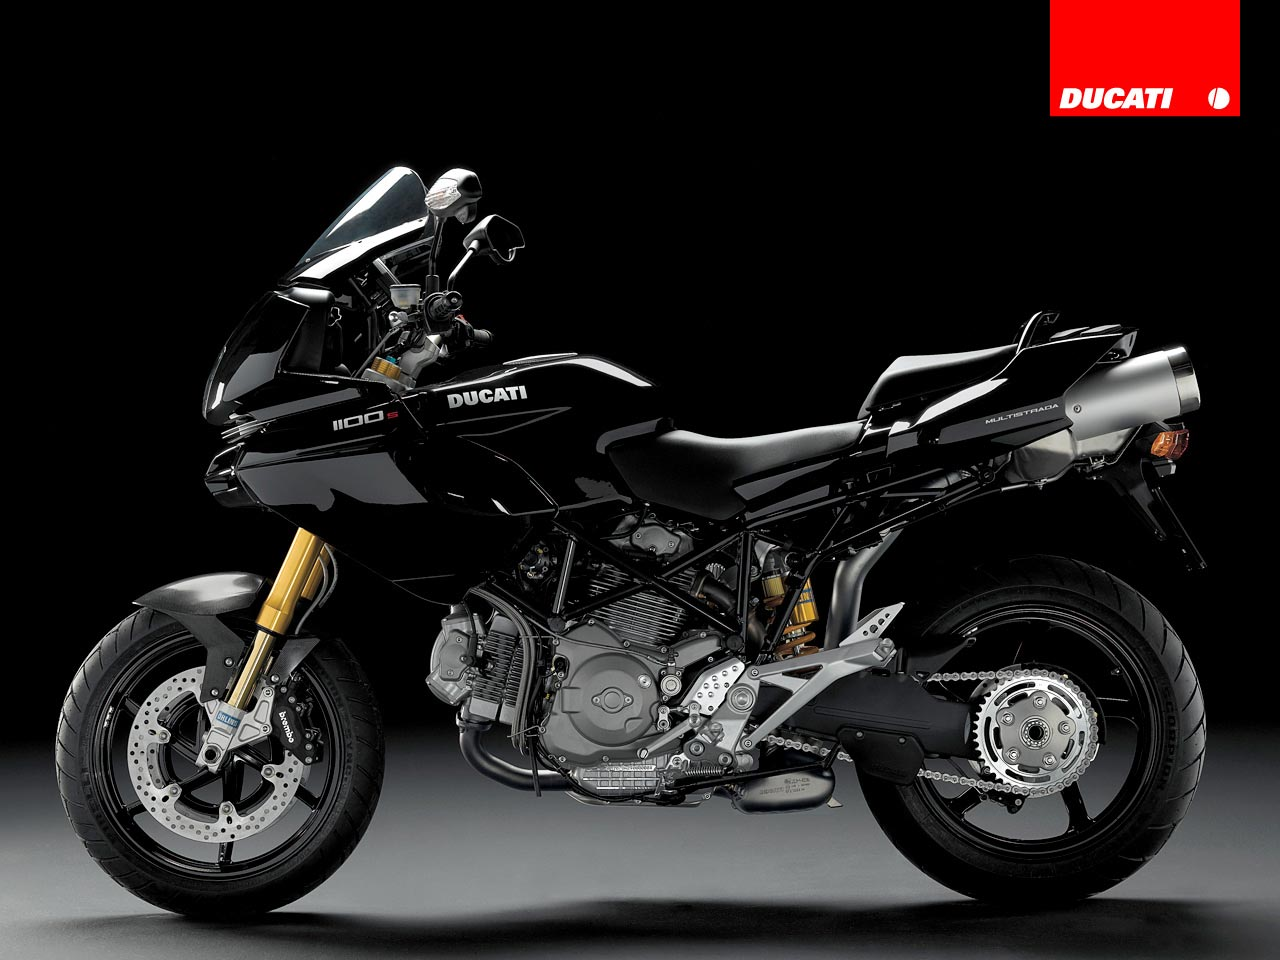 2008 ducati multistrada 1100s. Black Bedroom Furniture Sets. Home Design Ideas